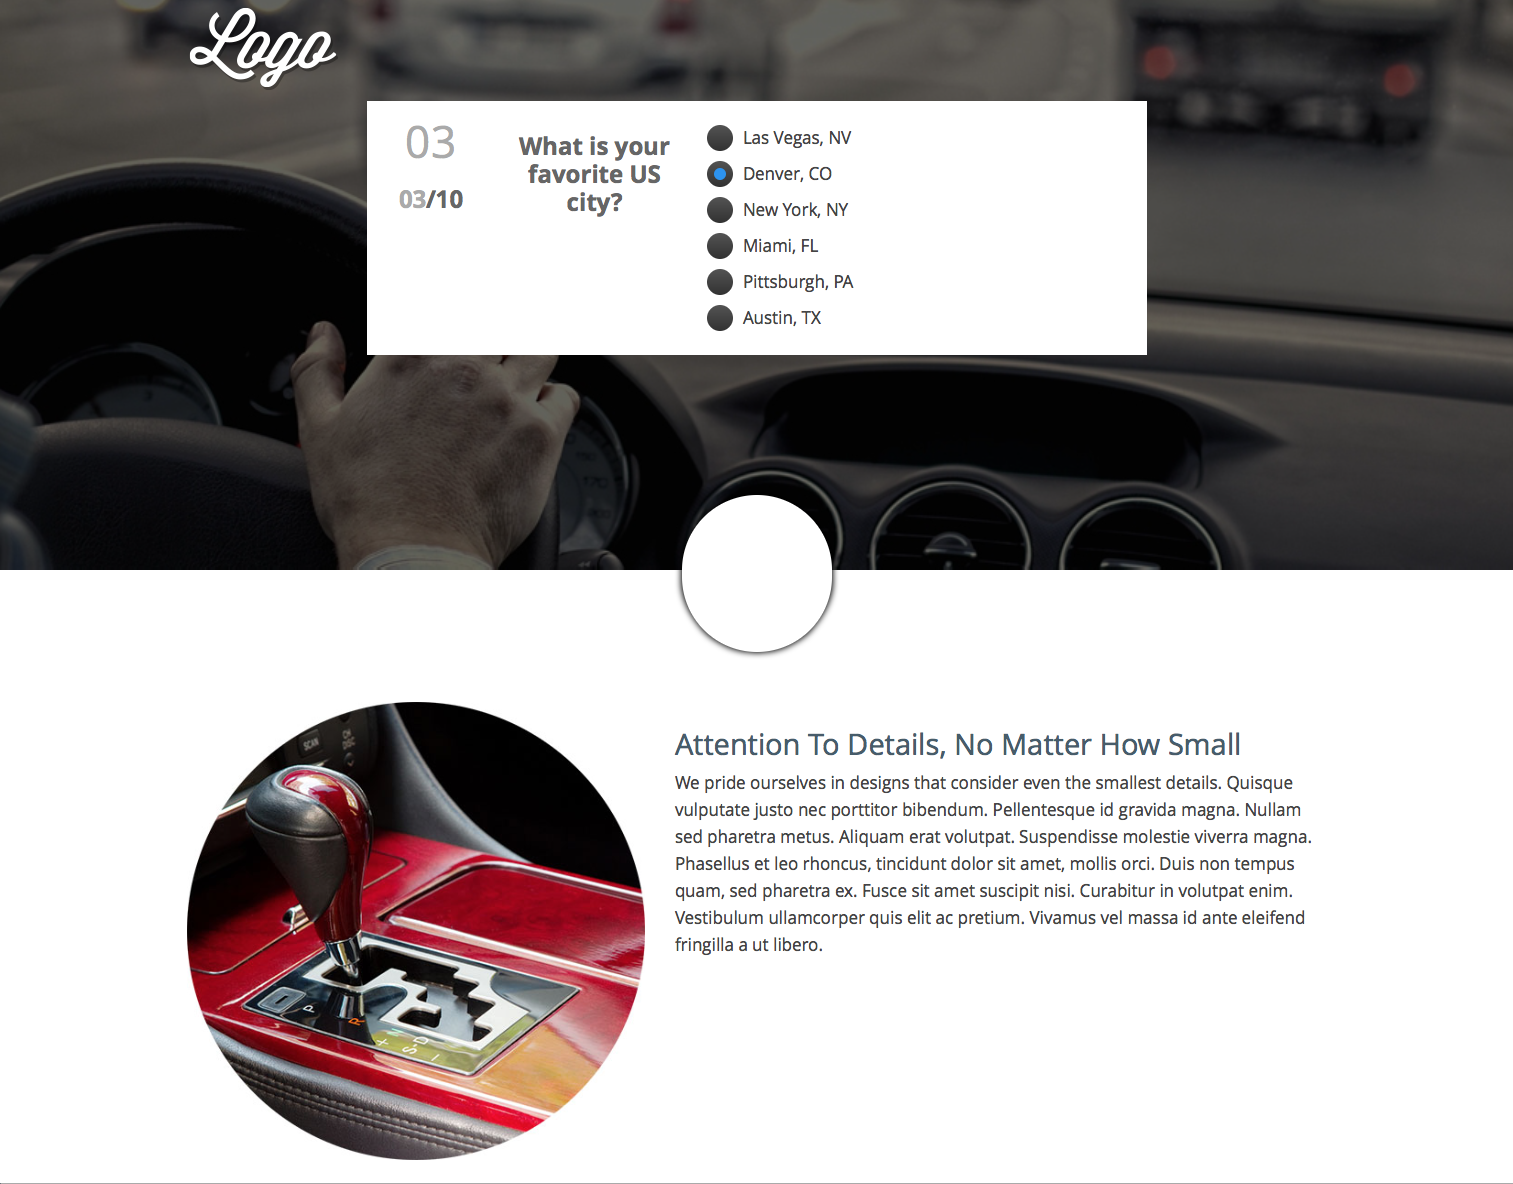 In this Quick Start example, there are 10 lifestyle questions that promise to get you matched with the right car. Again, these questions and any content in the experience can be changed to suit the needs of your organization, product or service.